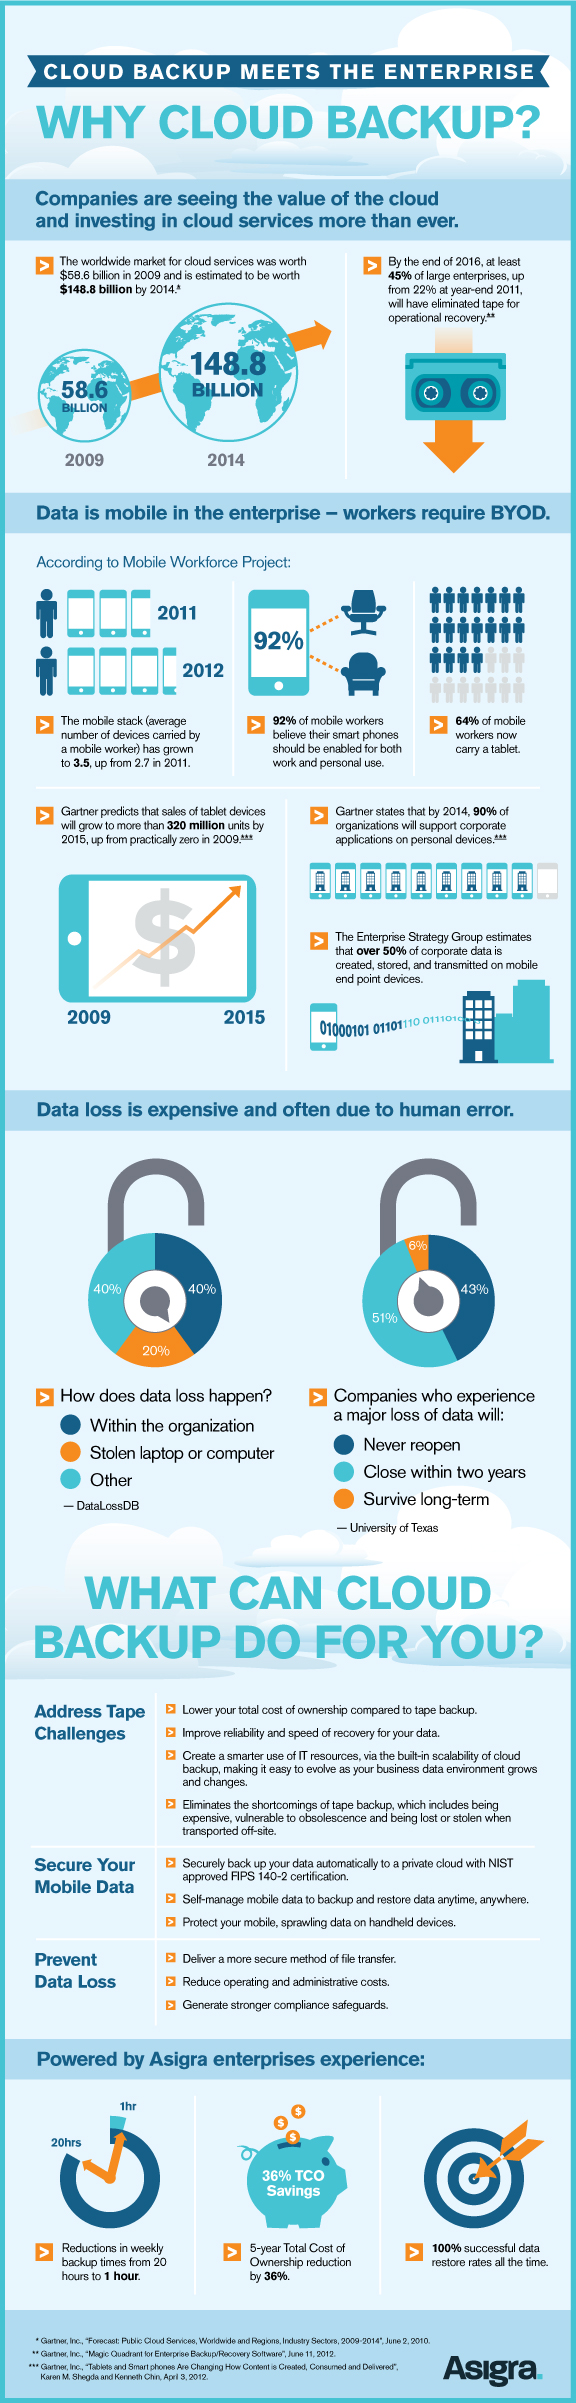 Why Cloud Backup for Enterprises [Infographic]